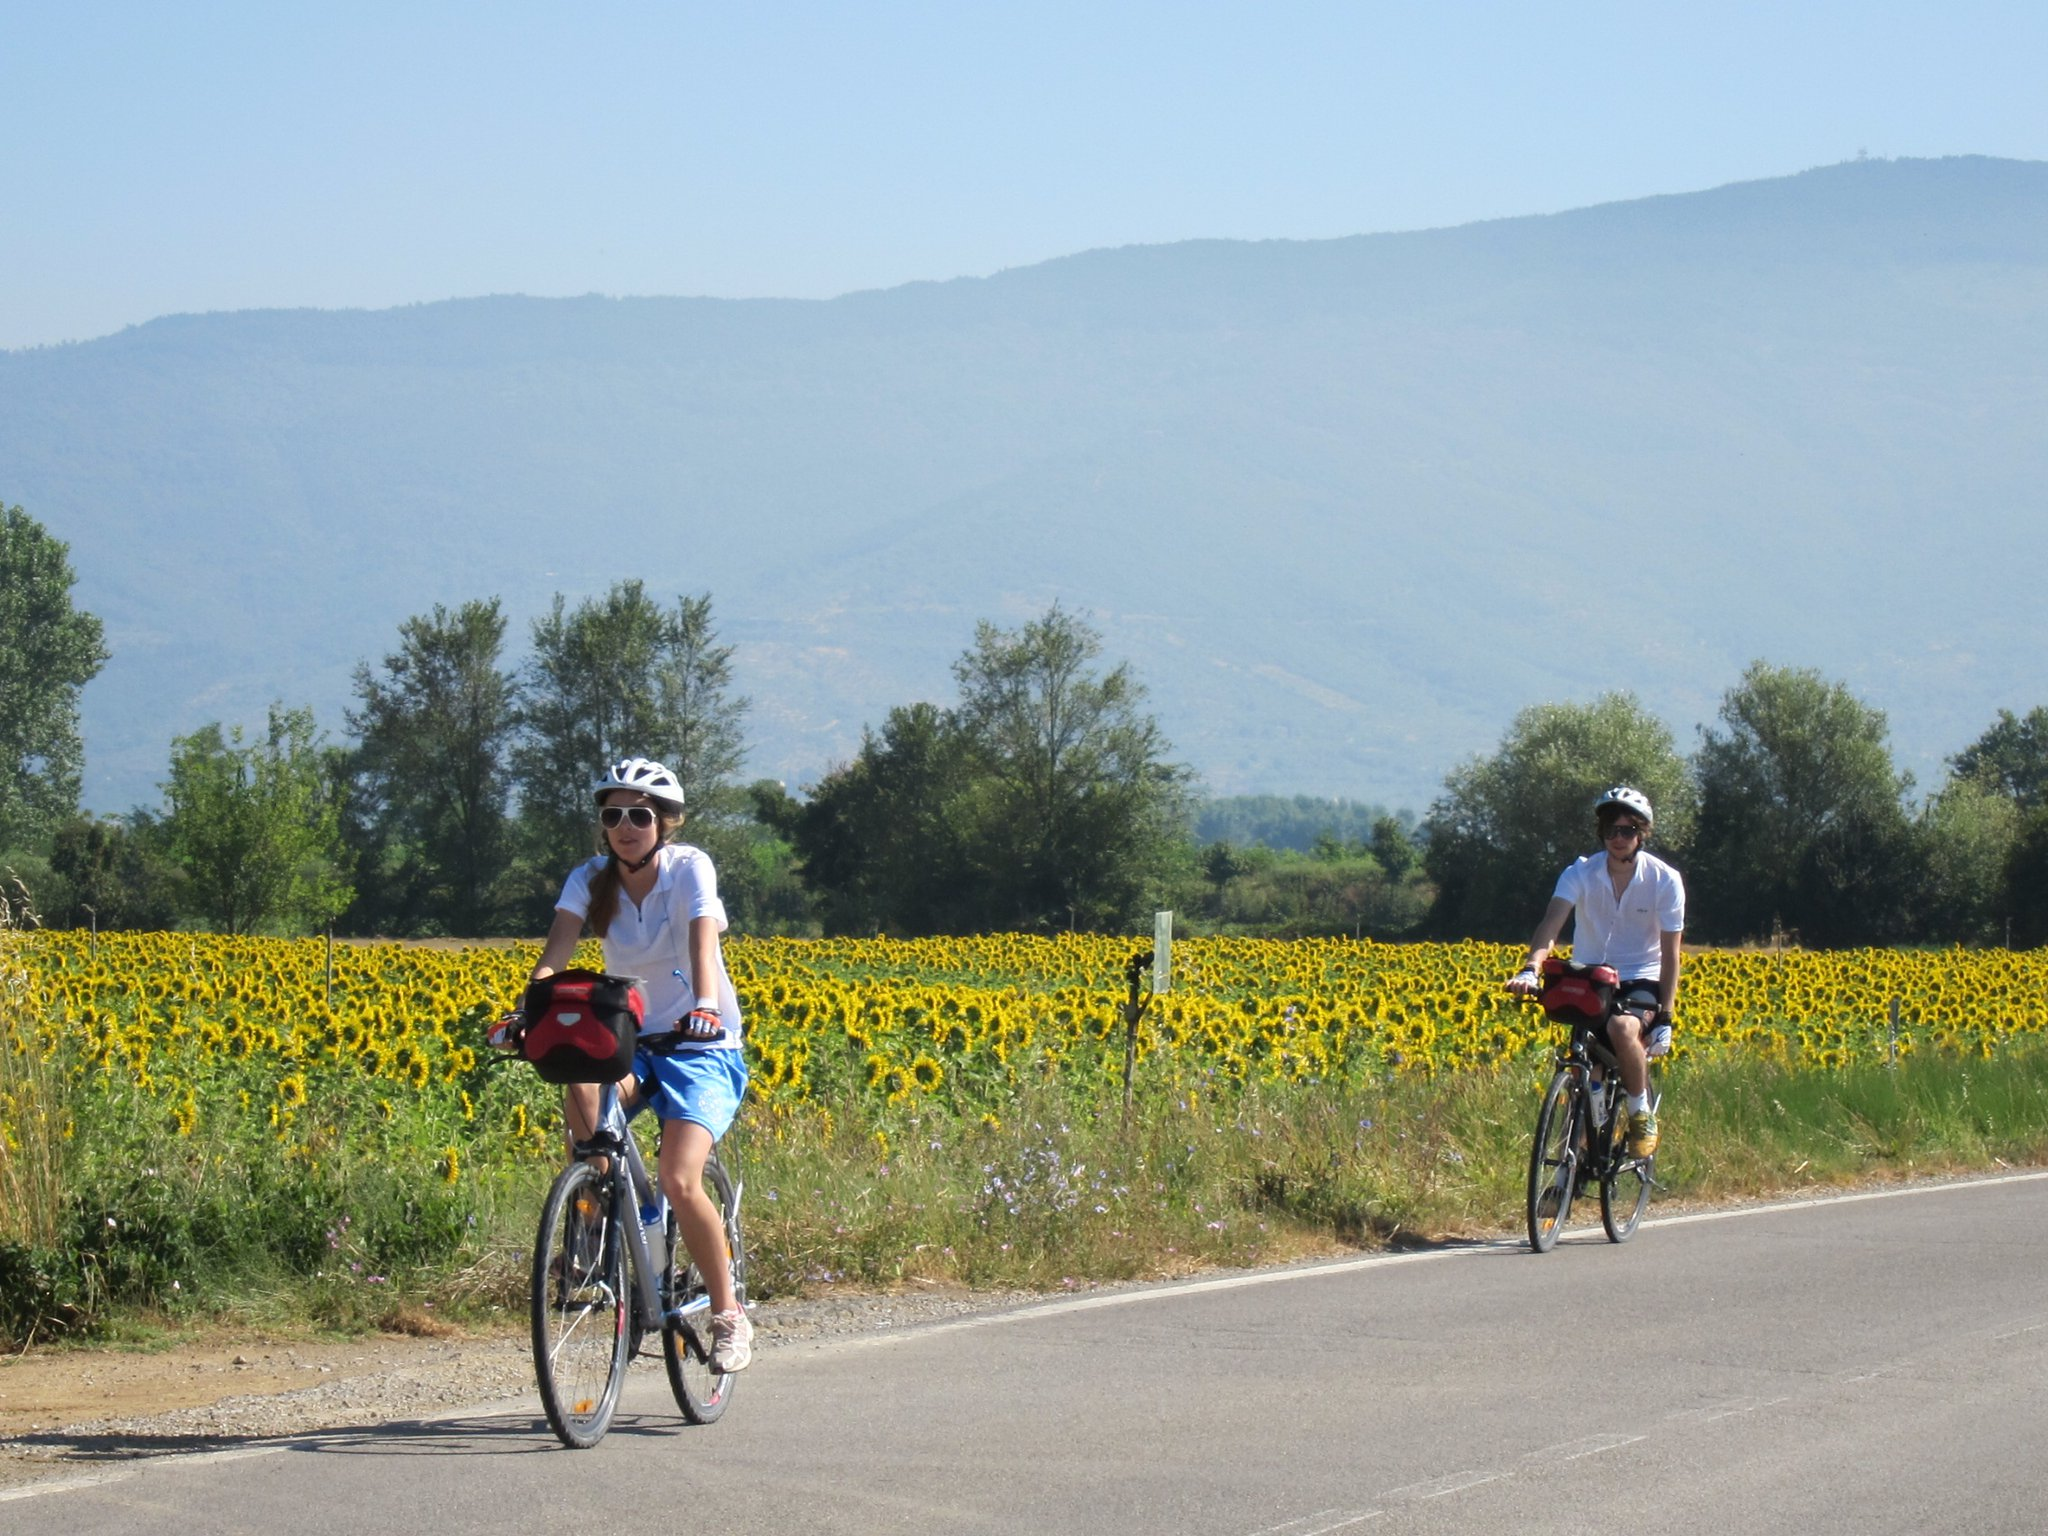 [Photo Credits: Ibiketuscany.com]